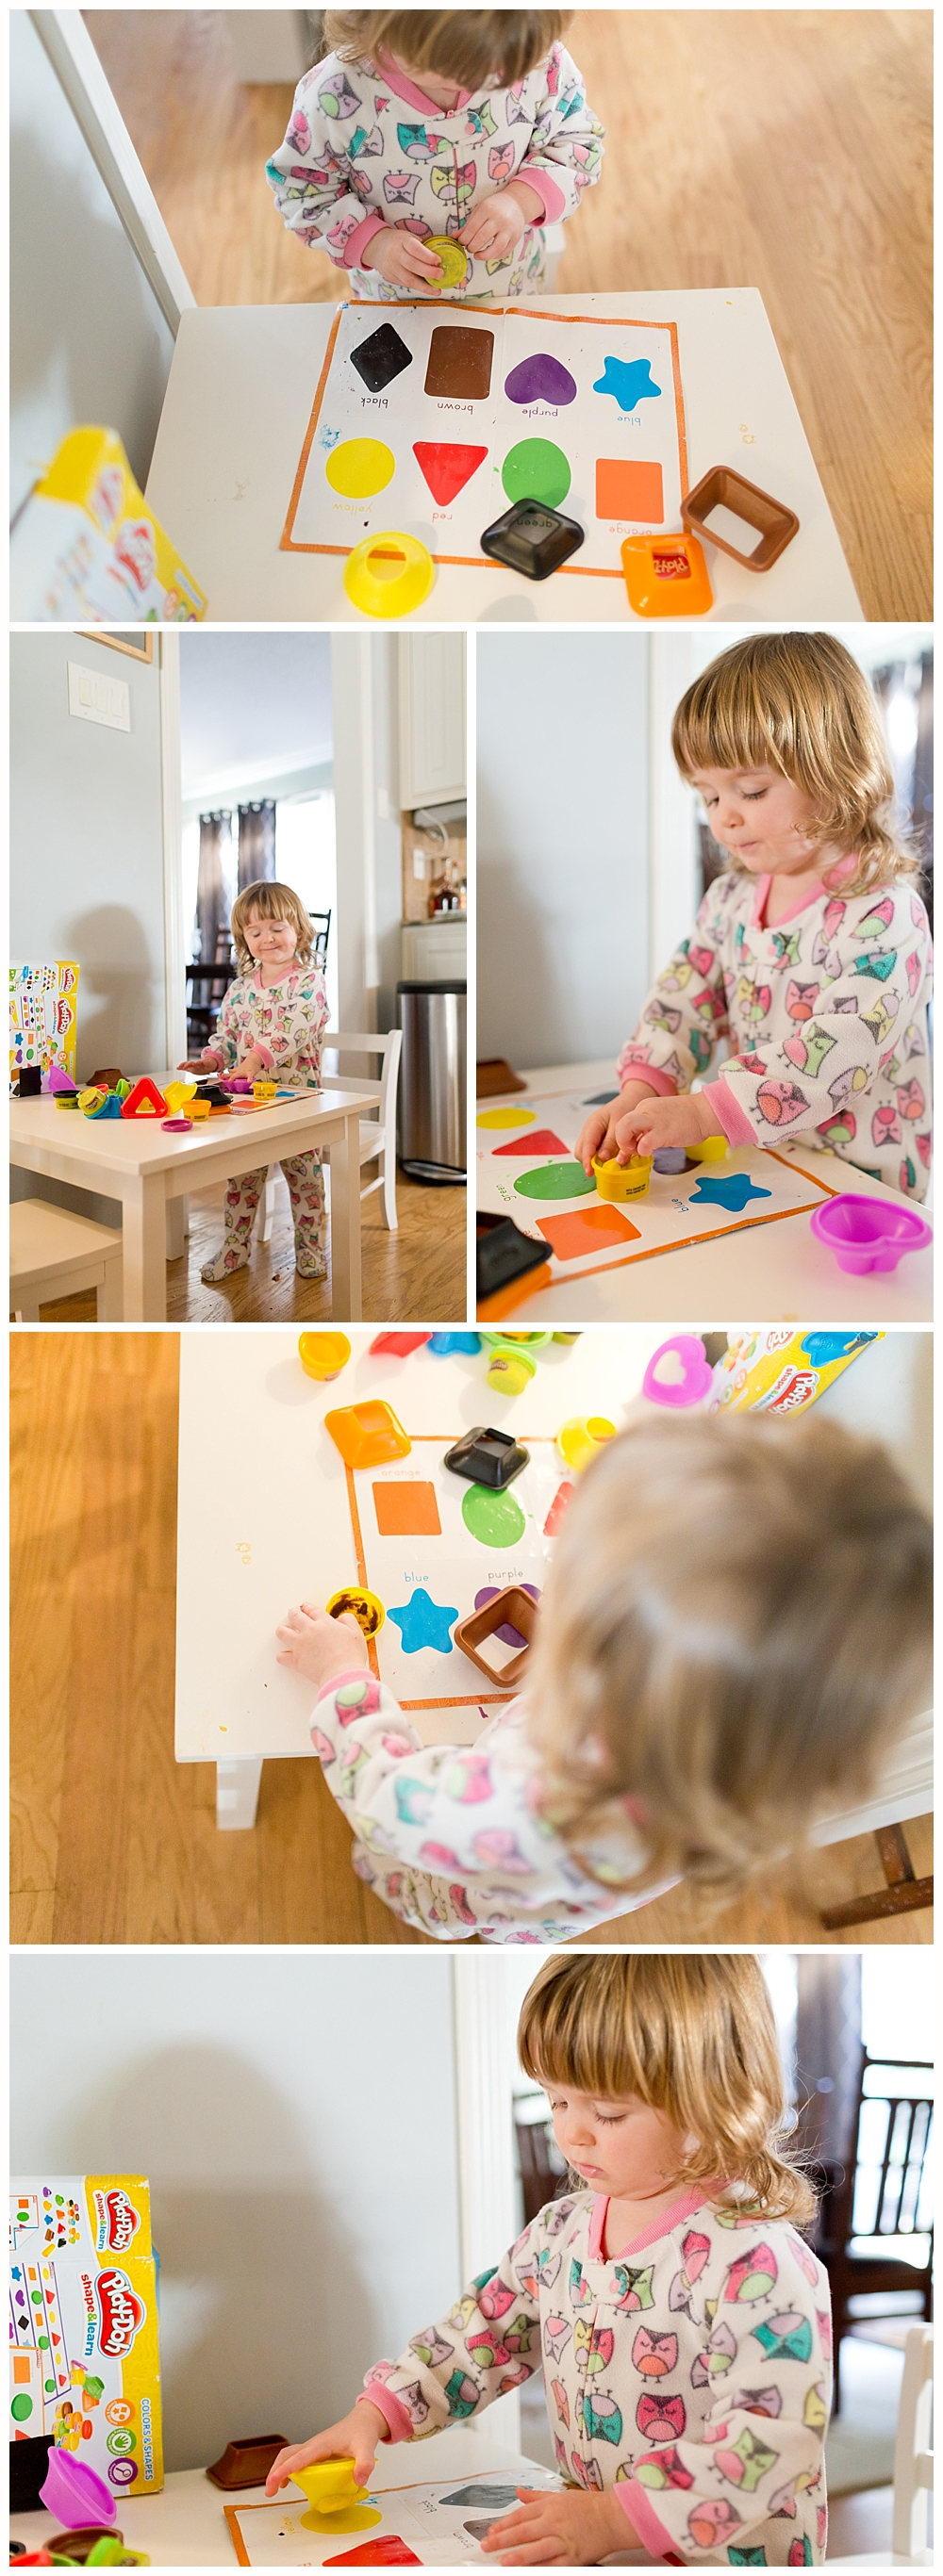 toddler girl playing with Play-doh in pajamas